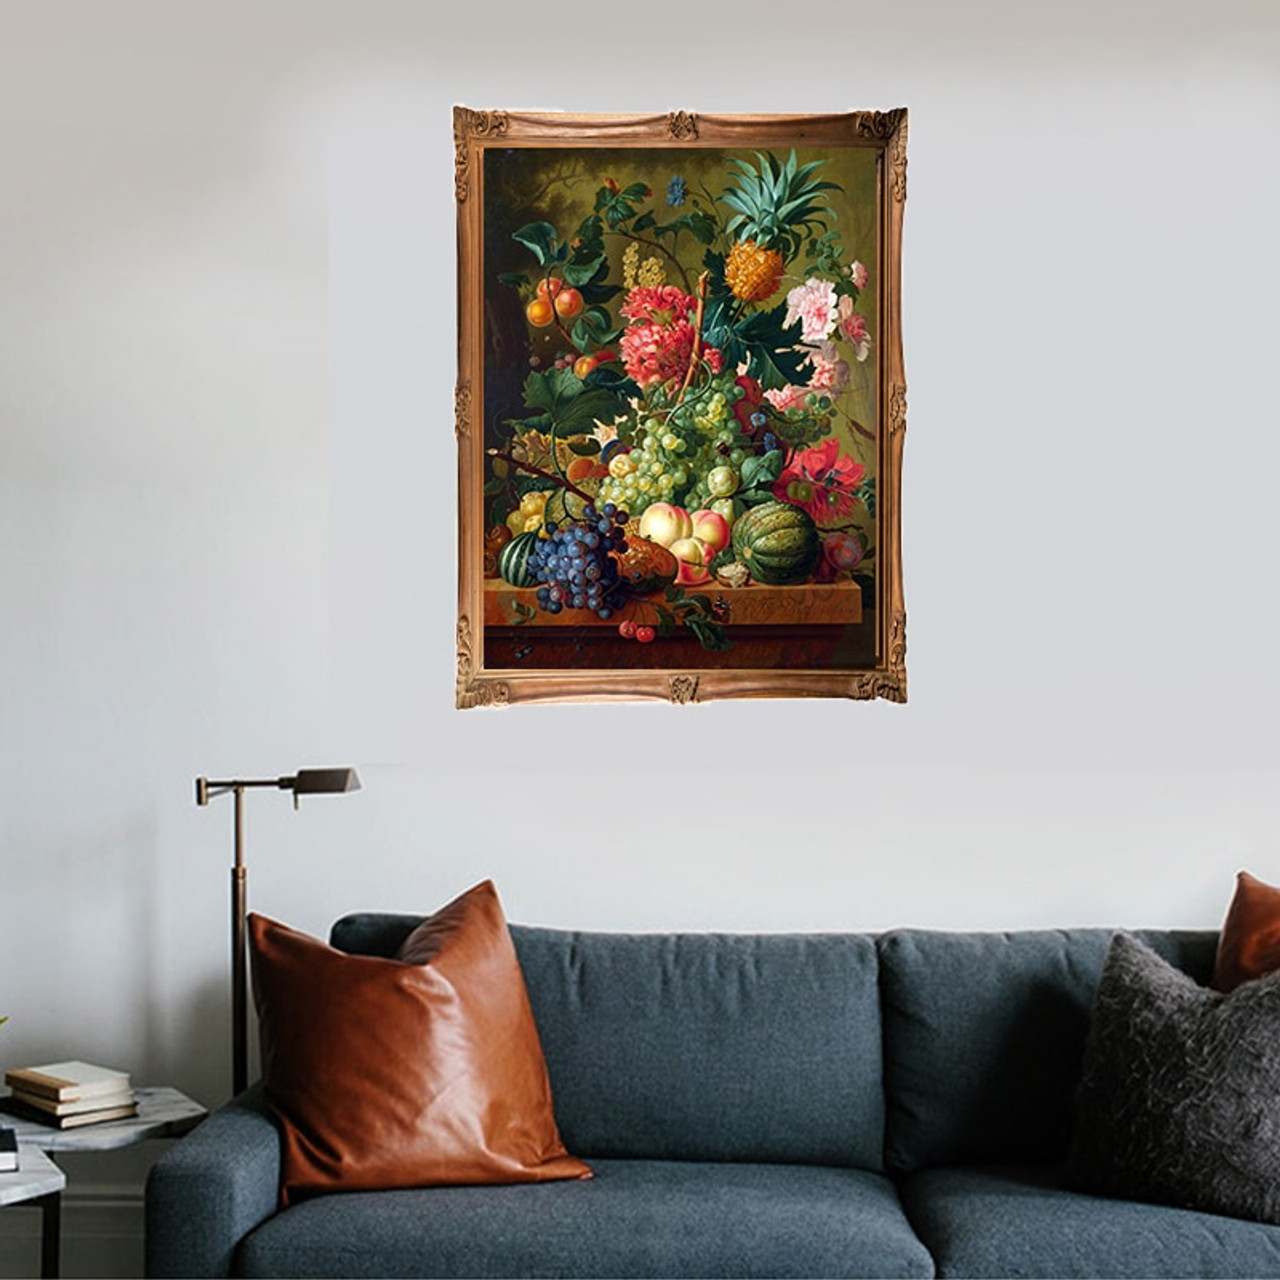 Framed//Unframed Flowers Tree DIY Paint By Number Kit On Canvas Home Wall Decor